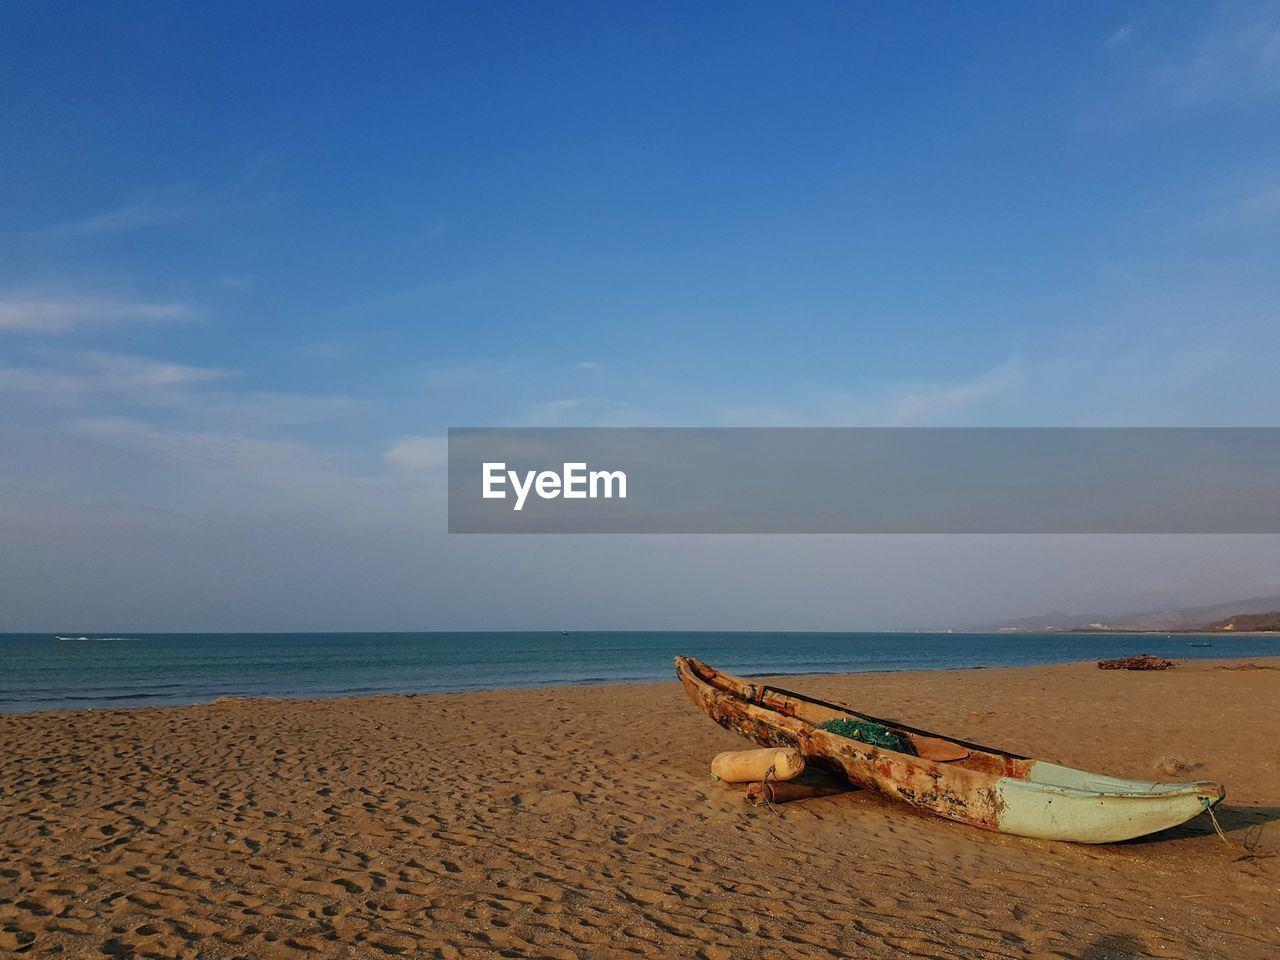 sea, sky, water, beach, land, horizon over water, horizon, beauty in nature, sand, nautical vessel, scenics - nature, transportation, tranquility, tranquil scene, mode of transportation, nature, moored, day, idyllic, no people, outdoors, rowboat